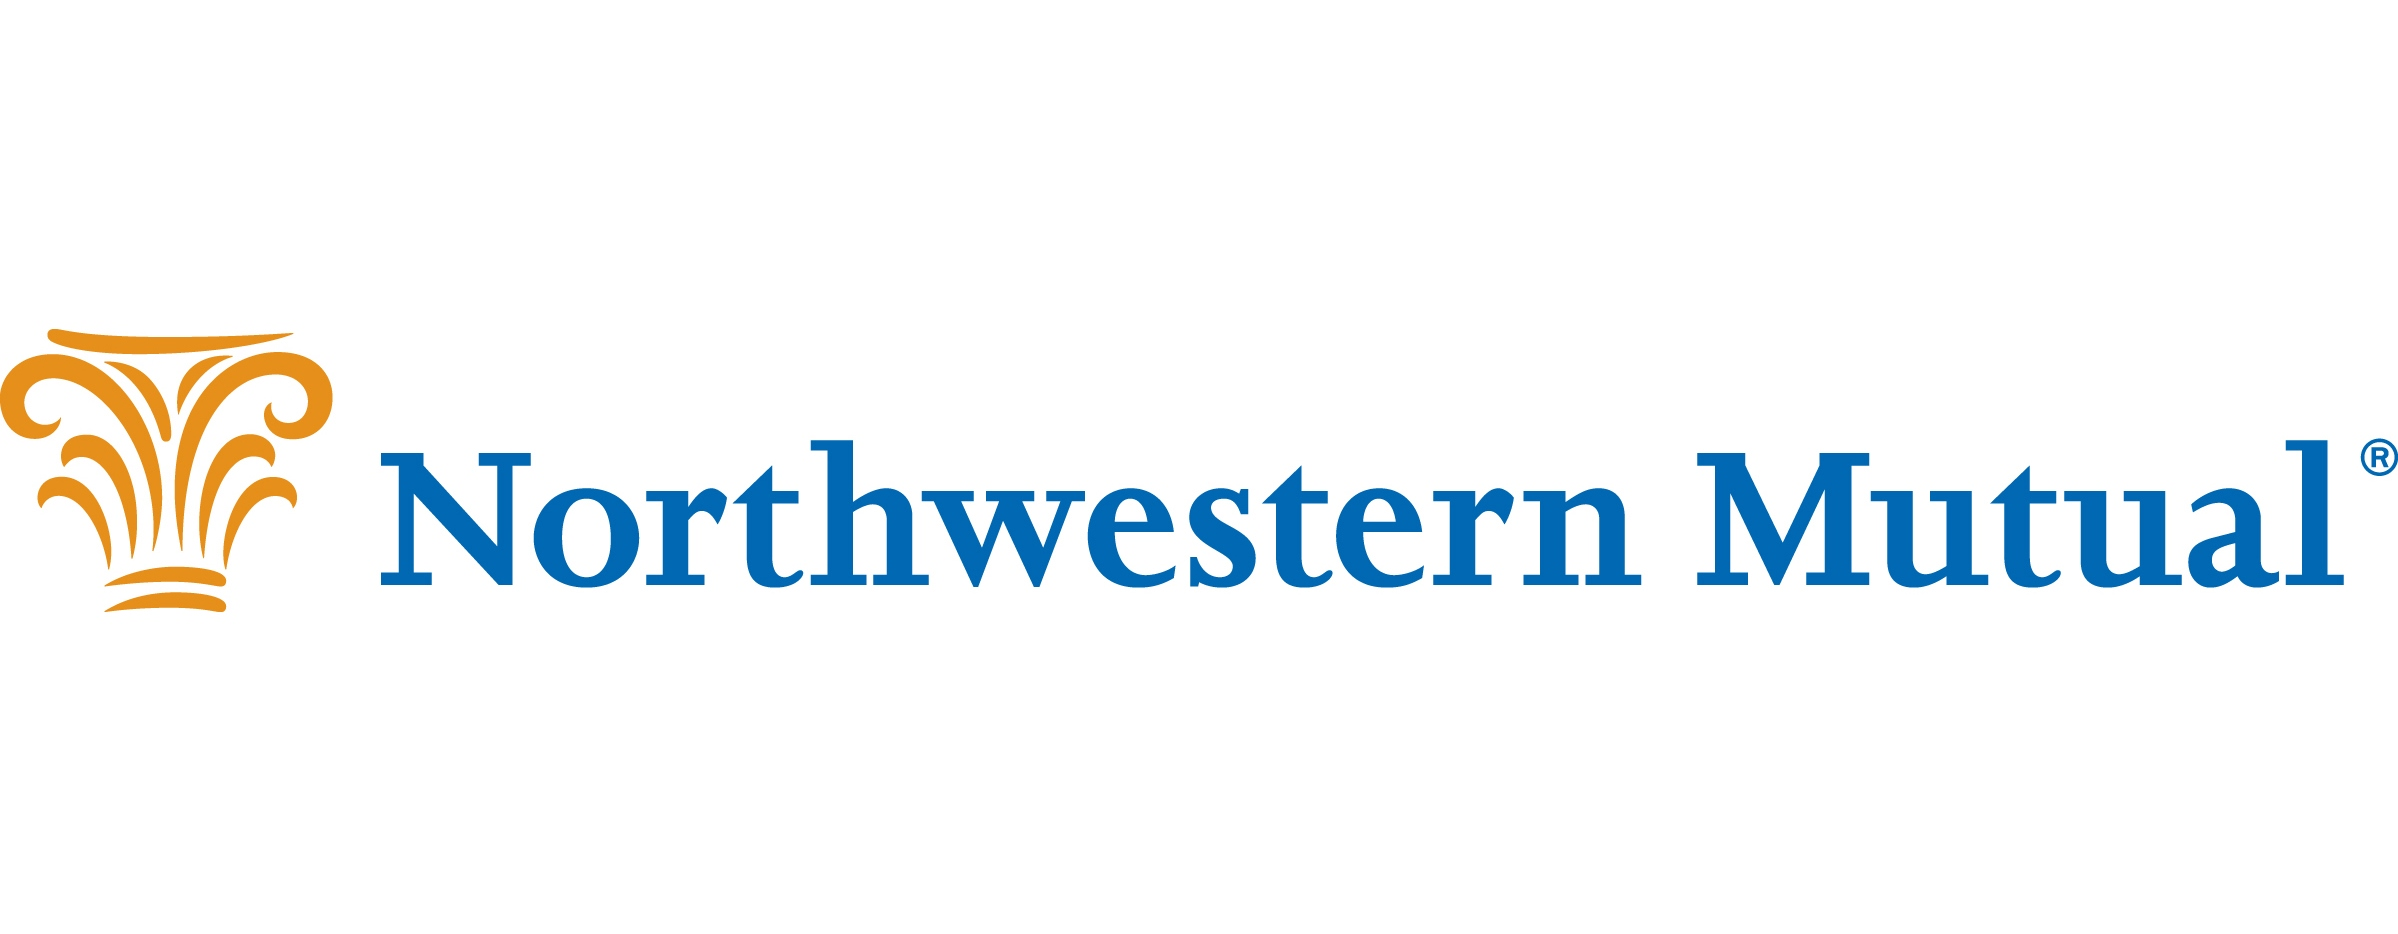 northwestern-mutual-logo-original